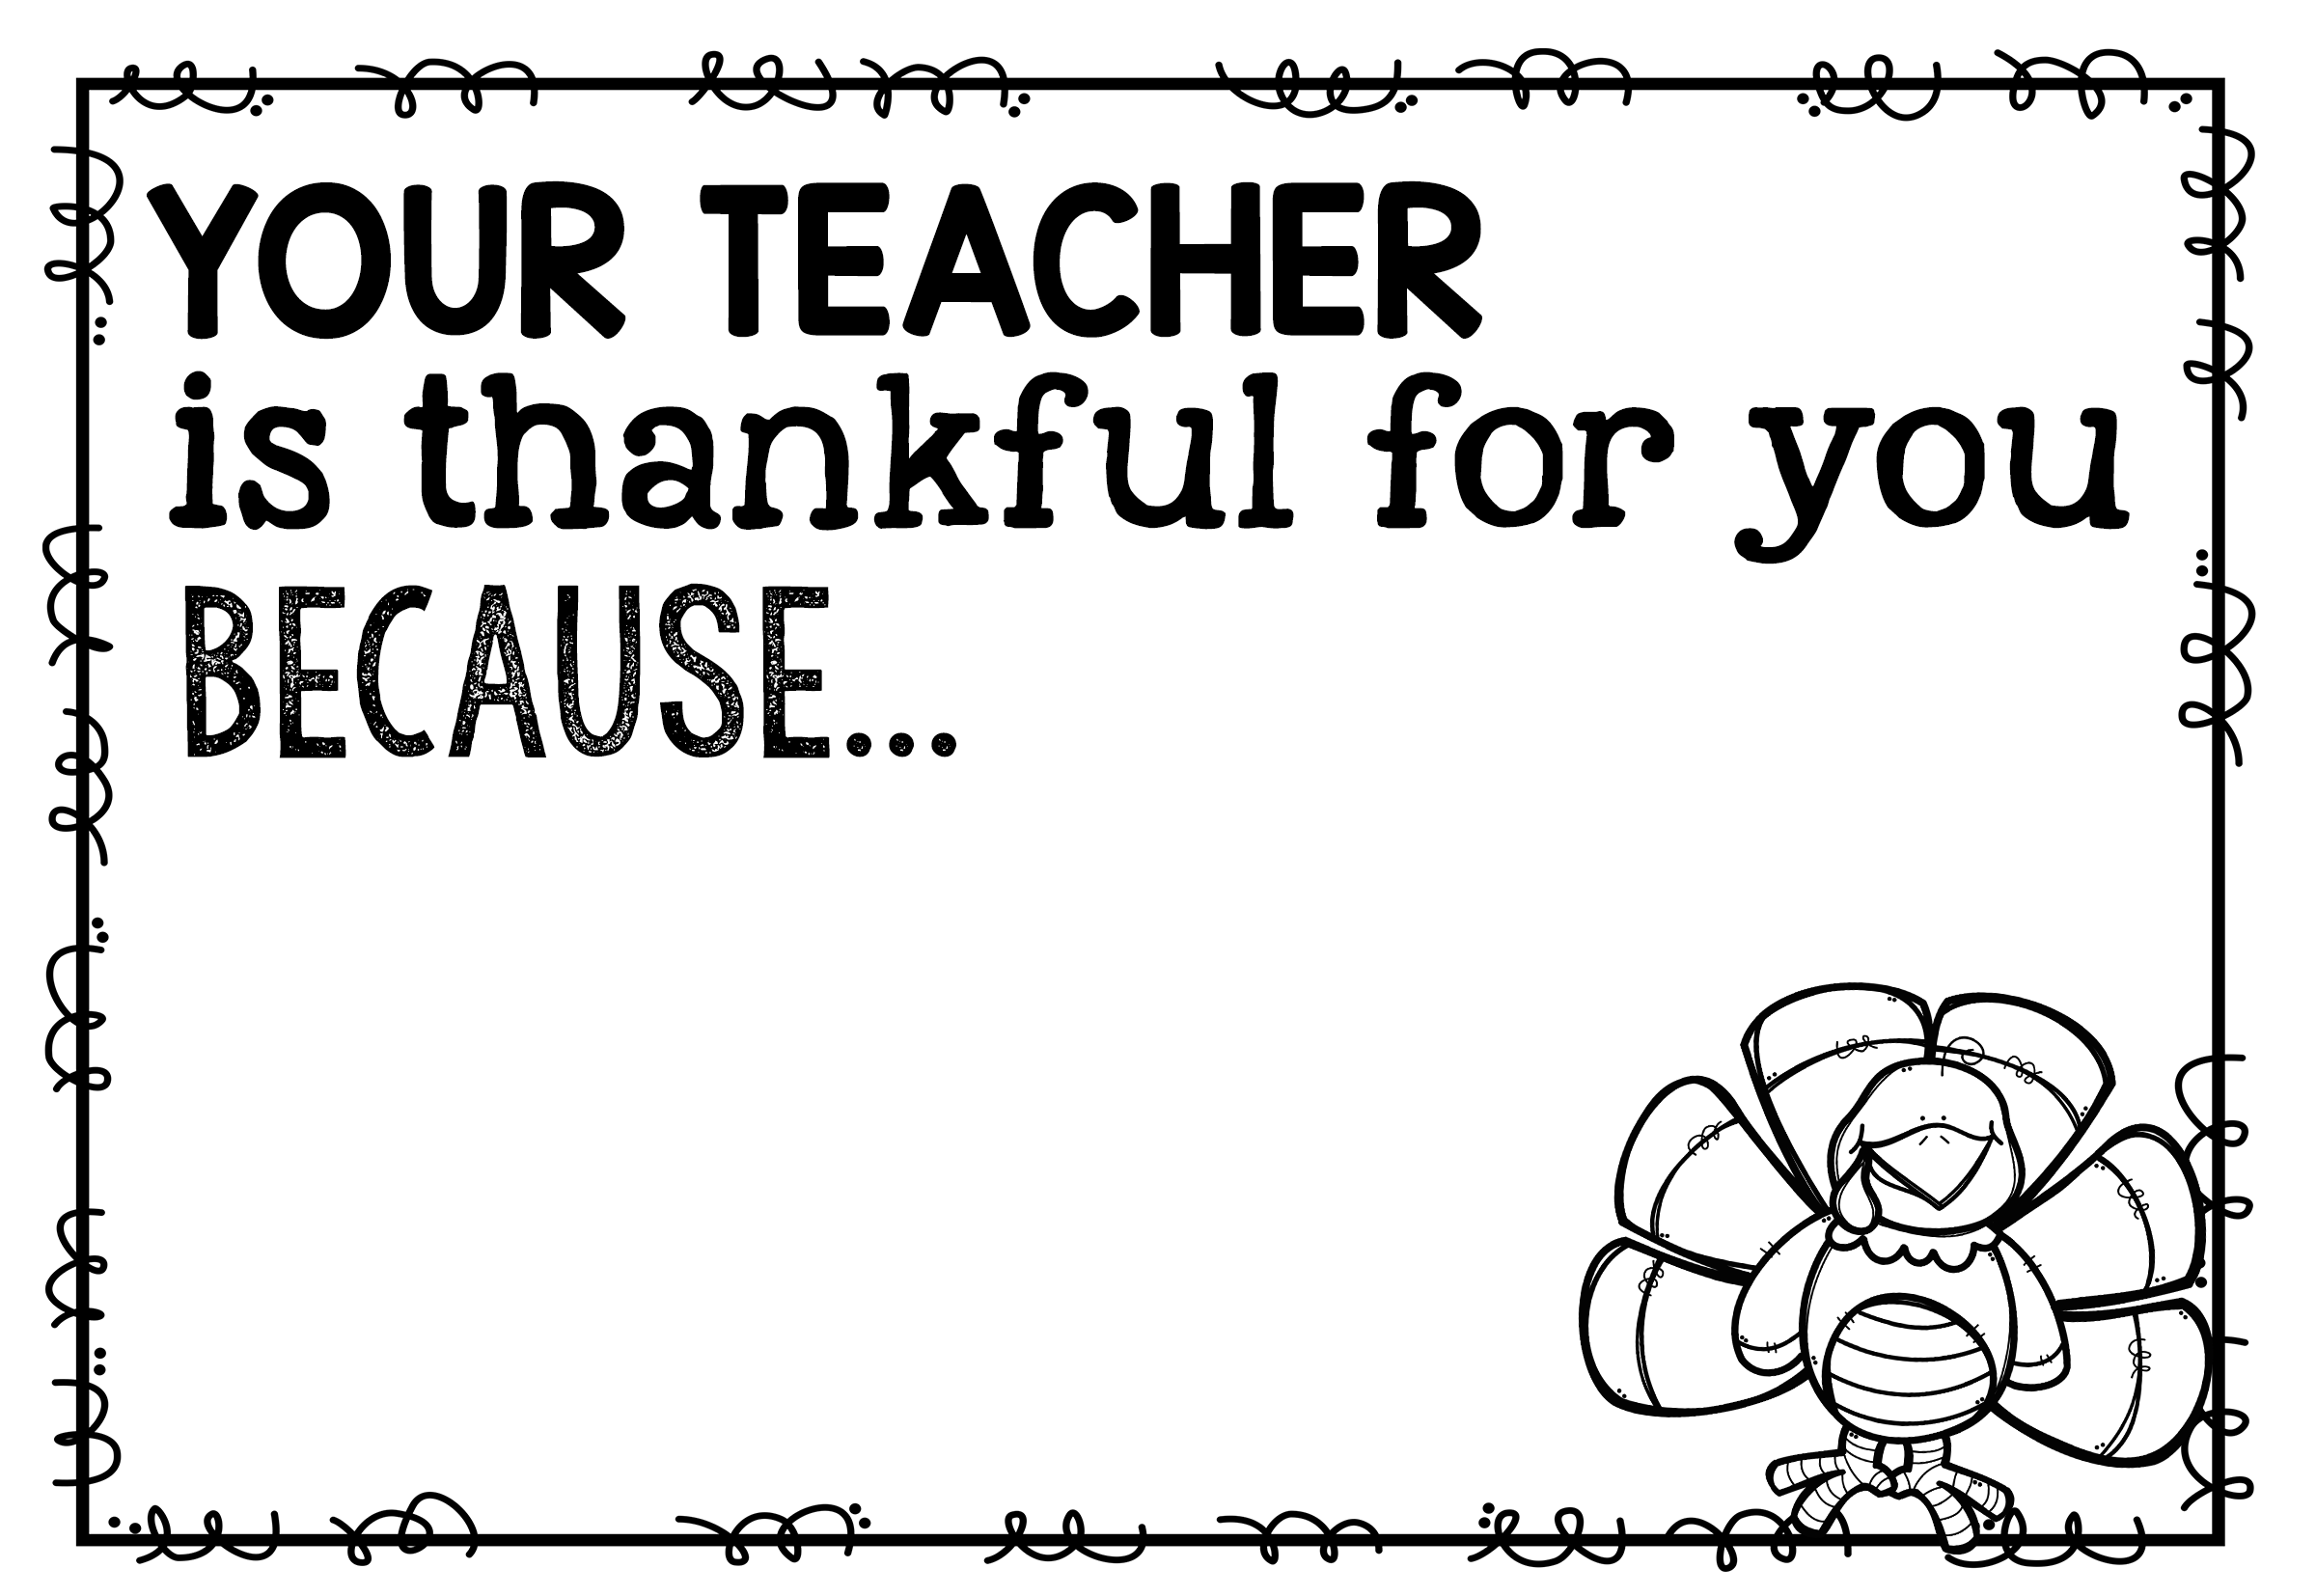 your teacher is thankful thumb.png